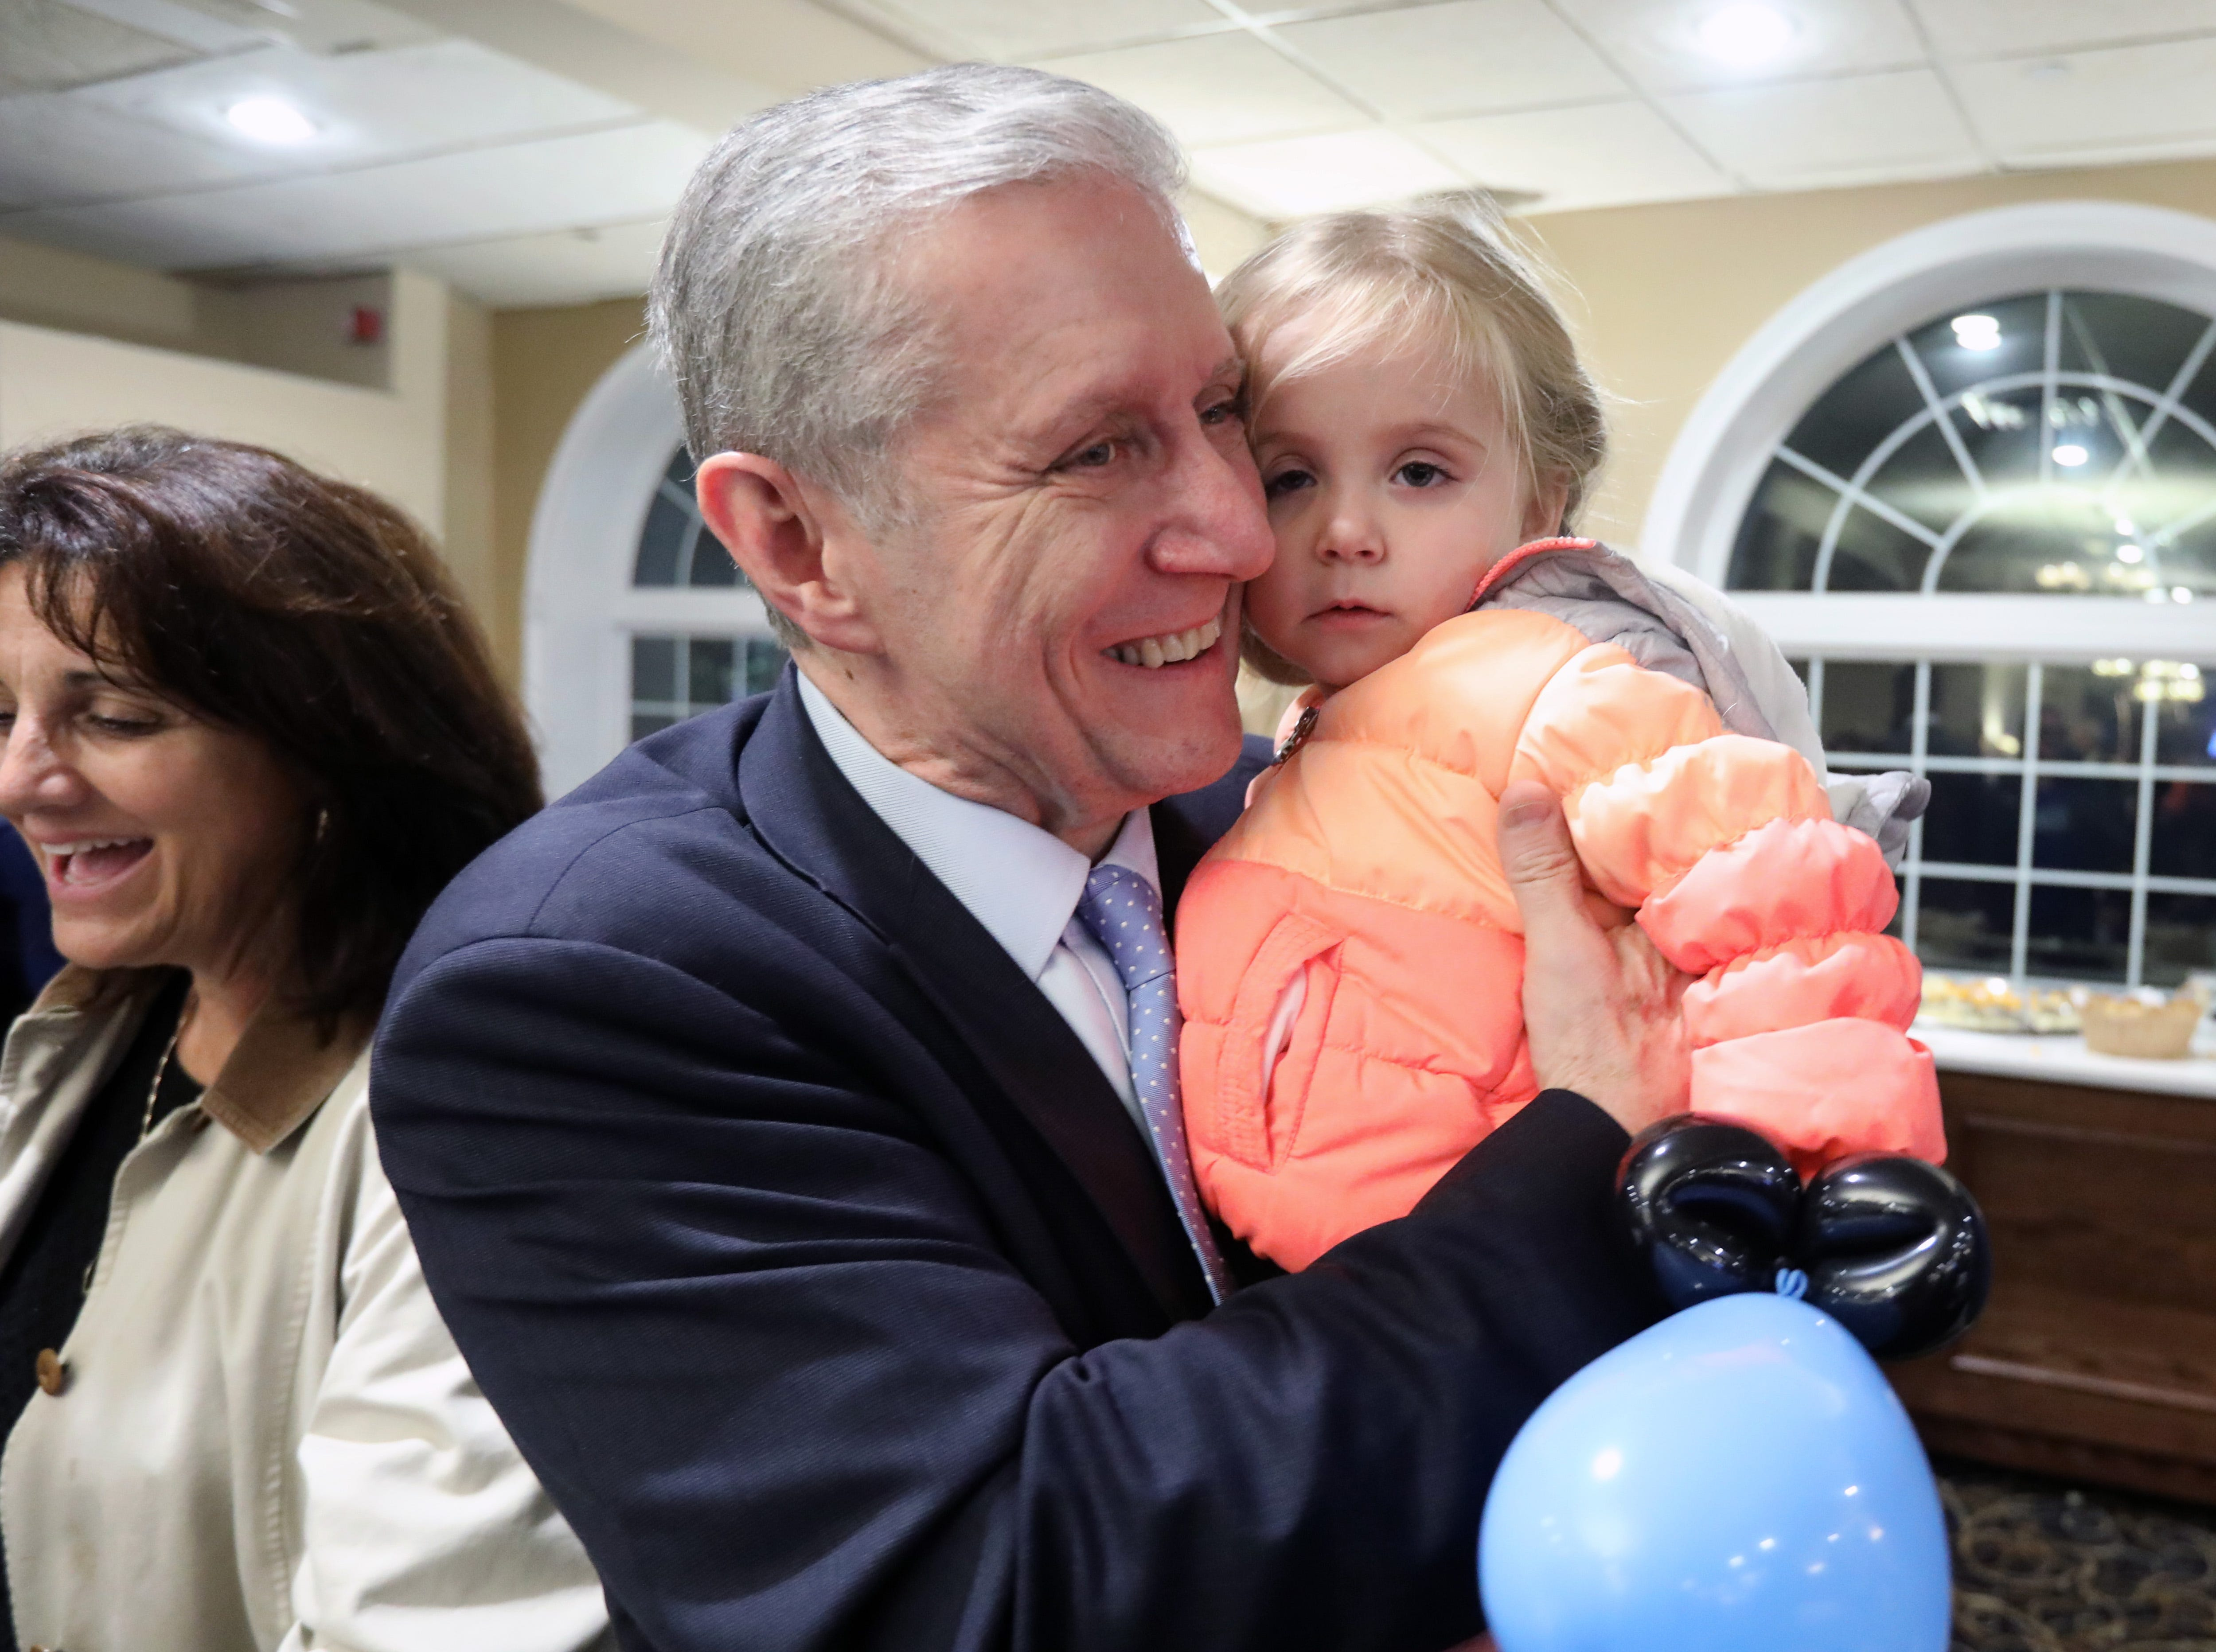 Thomas Zugibe, candidate for Supreme Court Justice 9th district, hugs his granddaughter Abigail Munson, 2, of Stony Point as the Rockland County democrats wait for election results at Casa Mia in Blauvelt Nov. 6, 2018.